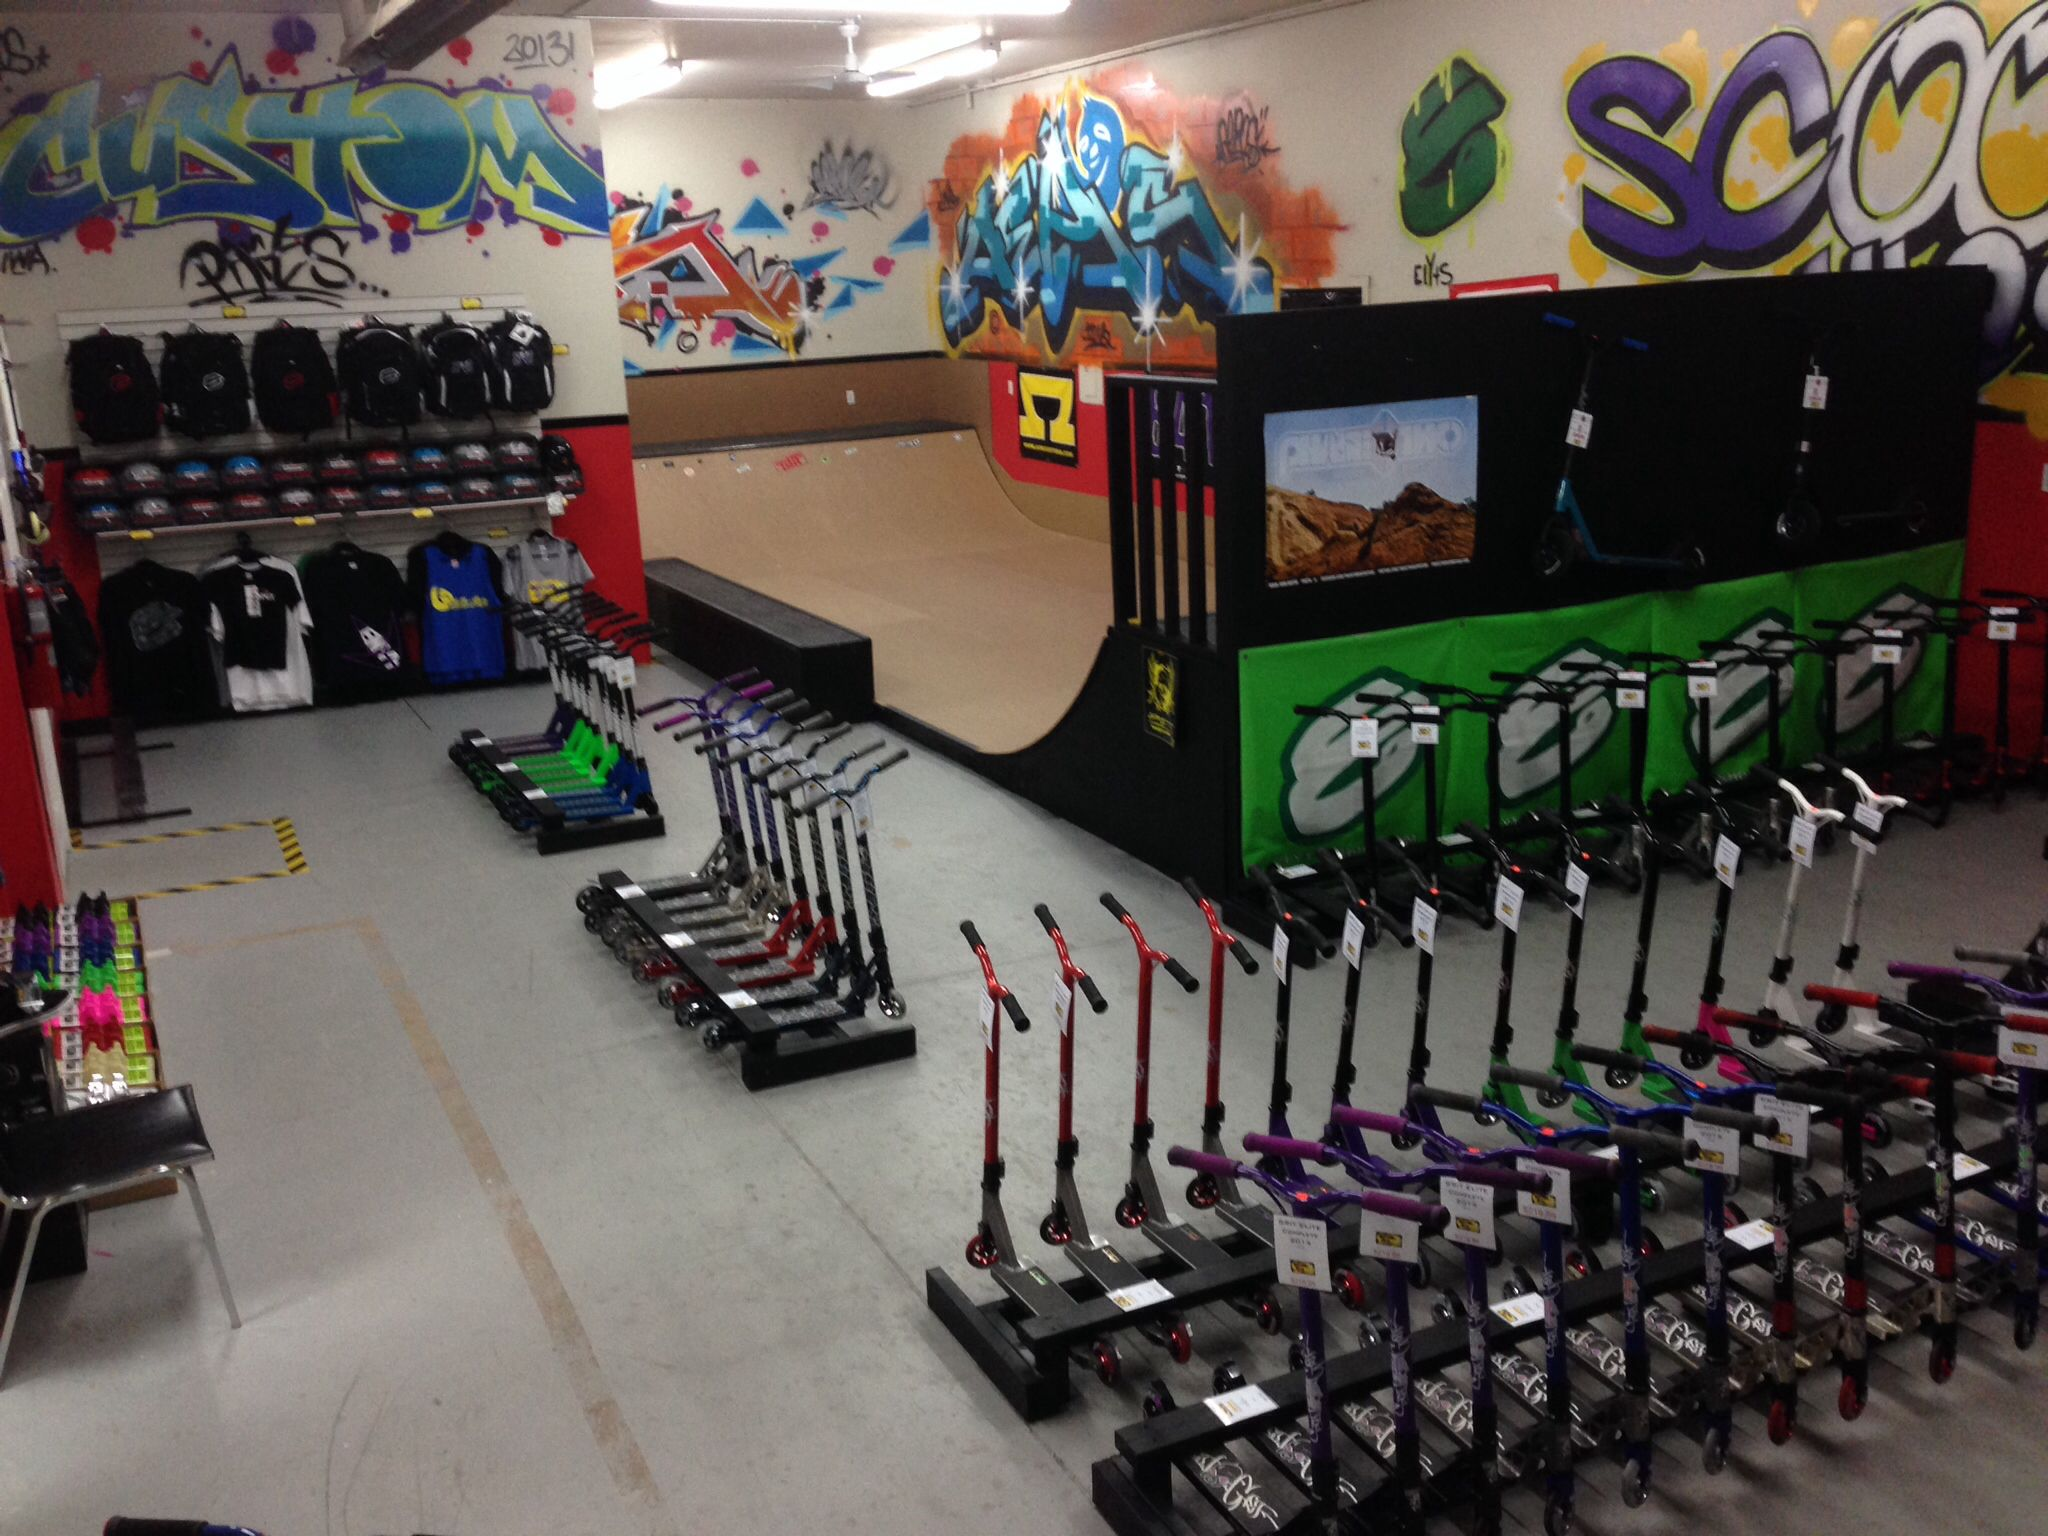 Scooter Alley Pro Shop Inc. Scooter store, Pro scooters